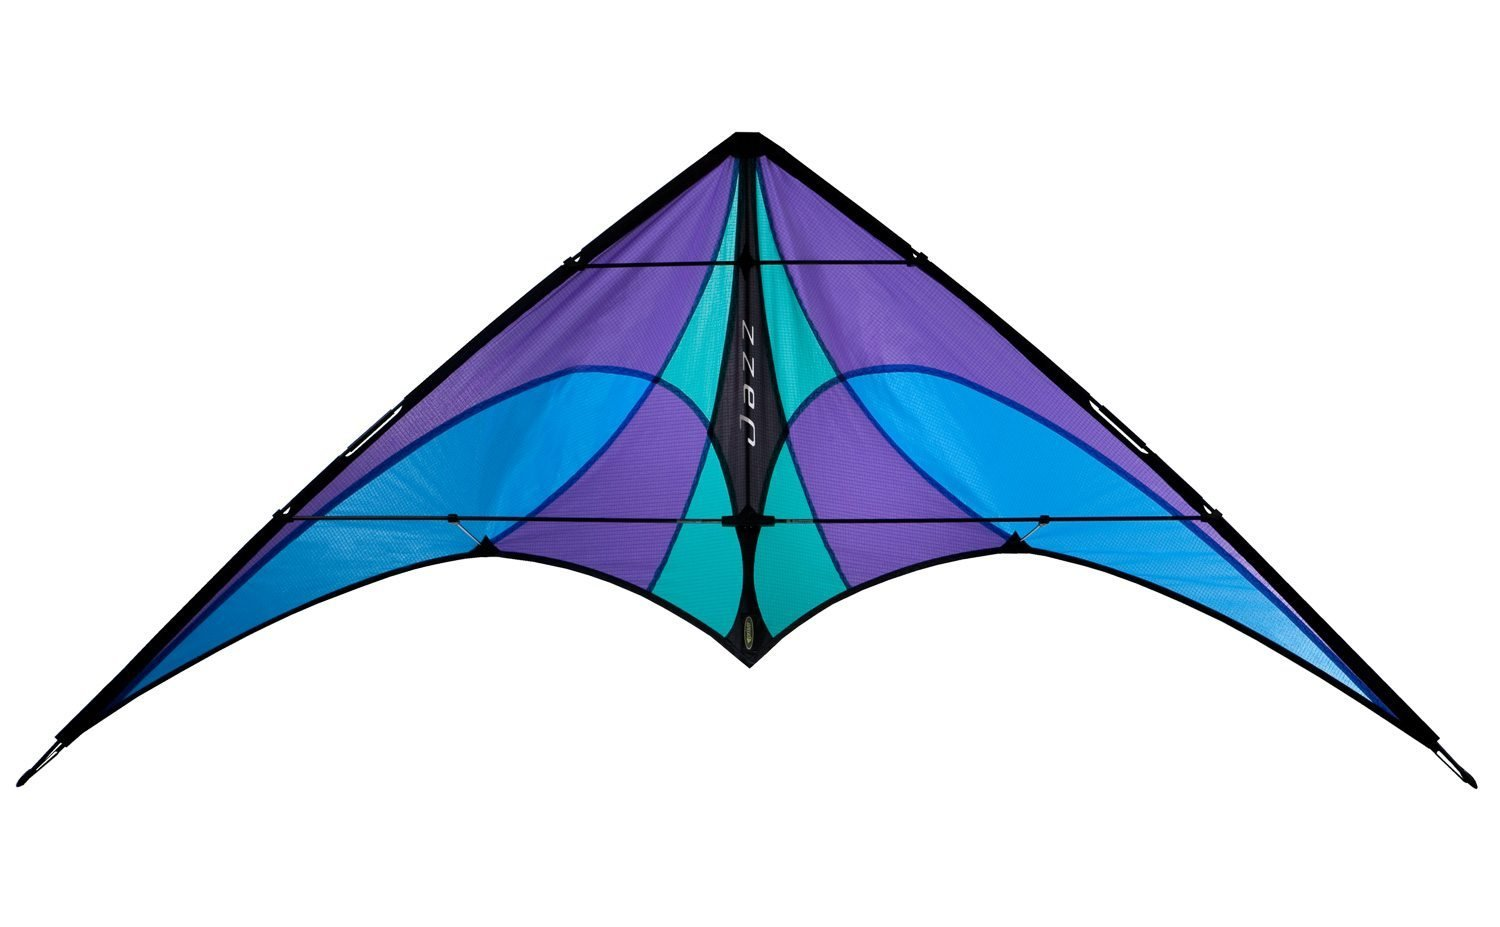 Prism Jazz Dual Line Delta Framed Stunt Kite with 40' Tail Bundle (3 Items) + Prism 40ft Nylon Ripstop Streamer Tail + WindBone Kiteboarding Lifestyle Stickers + Key Fob (Ice)